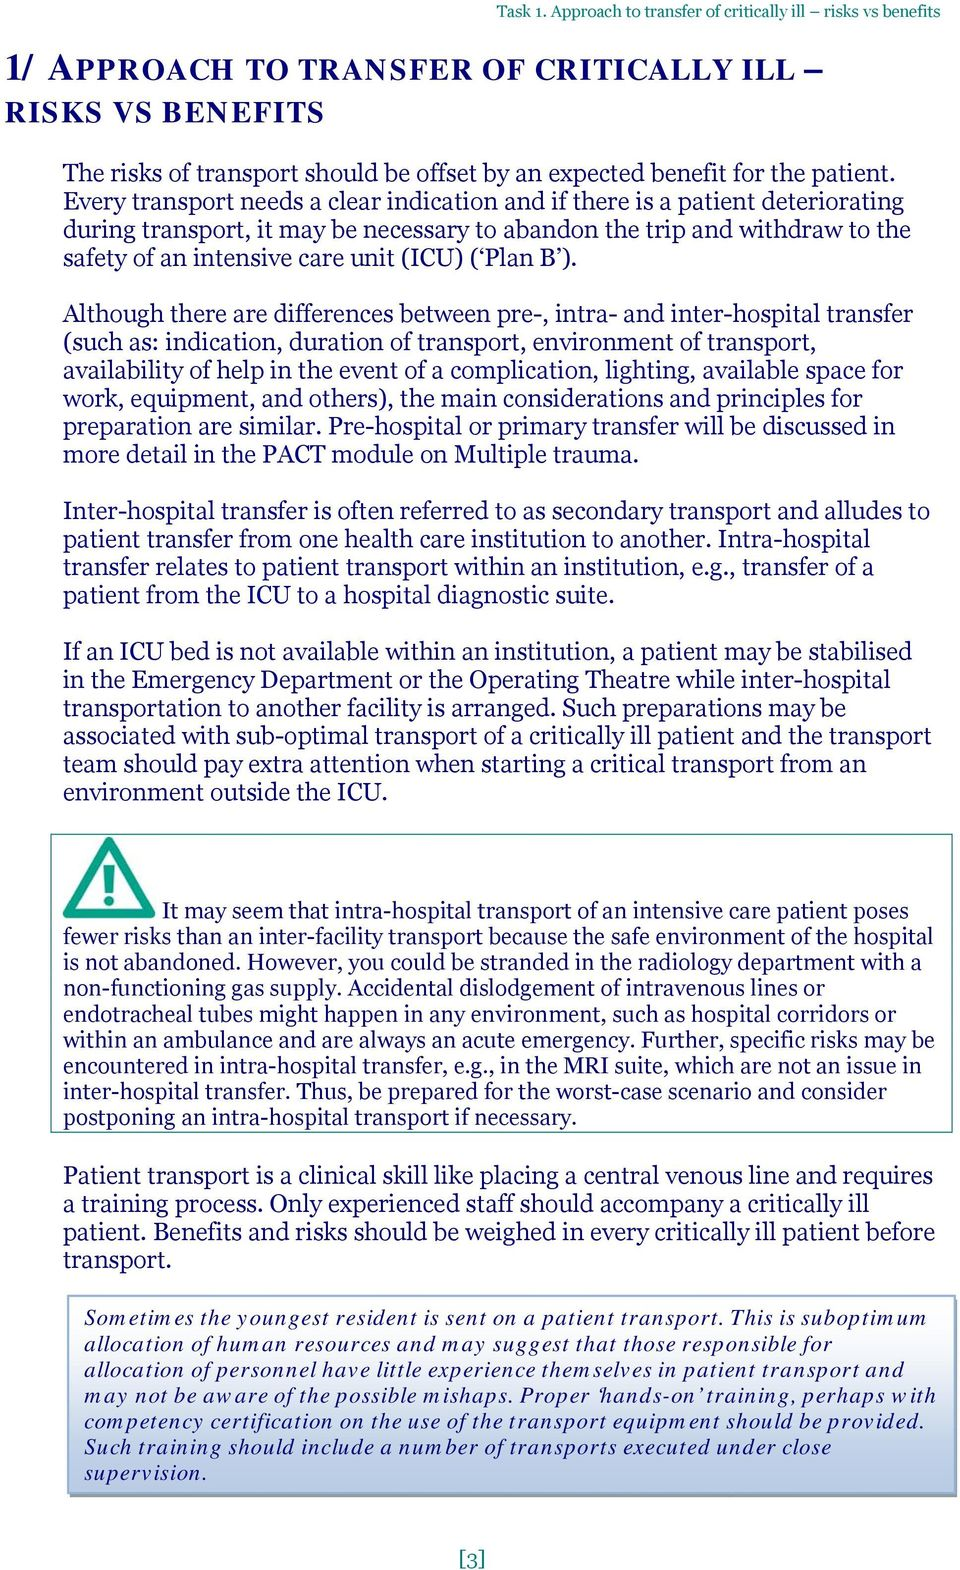 Every transport needs a clear indication and if there is a patient deteriorating during transport, it may be necessary to abandon the trip and withdraw to the safety of an intensive care unit (ICU) (